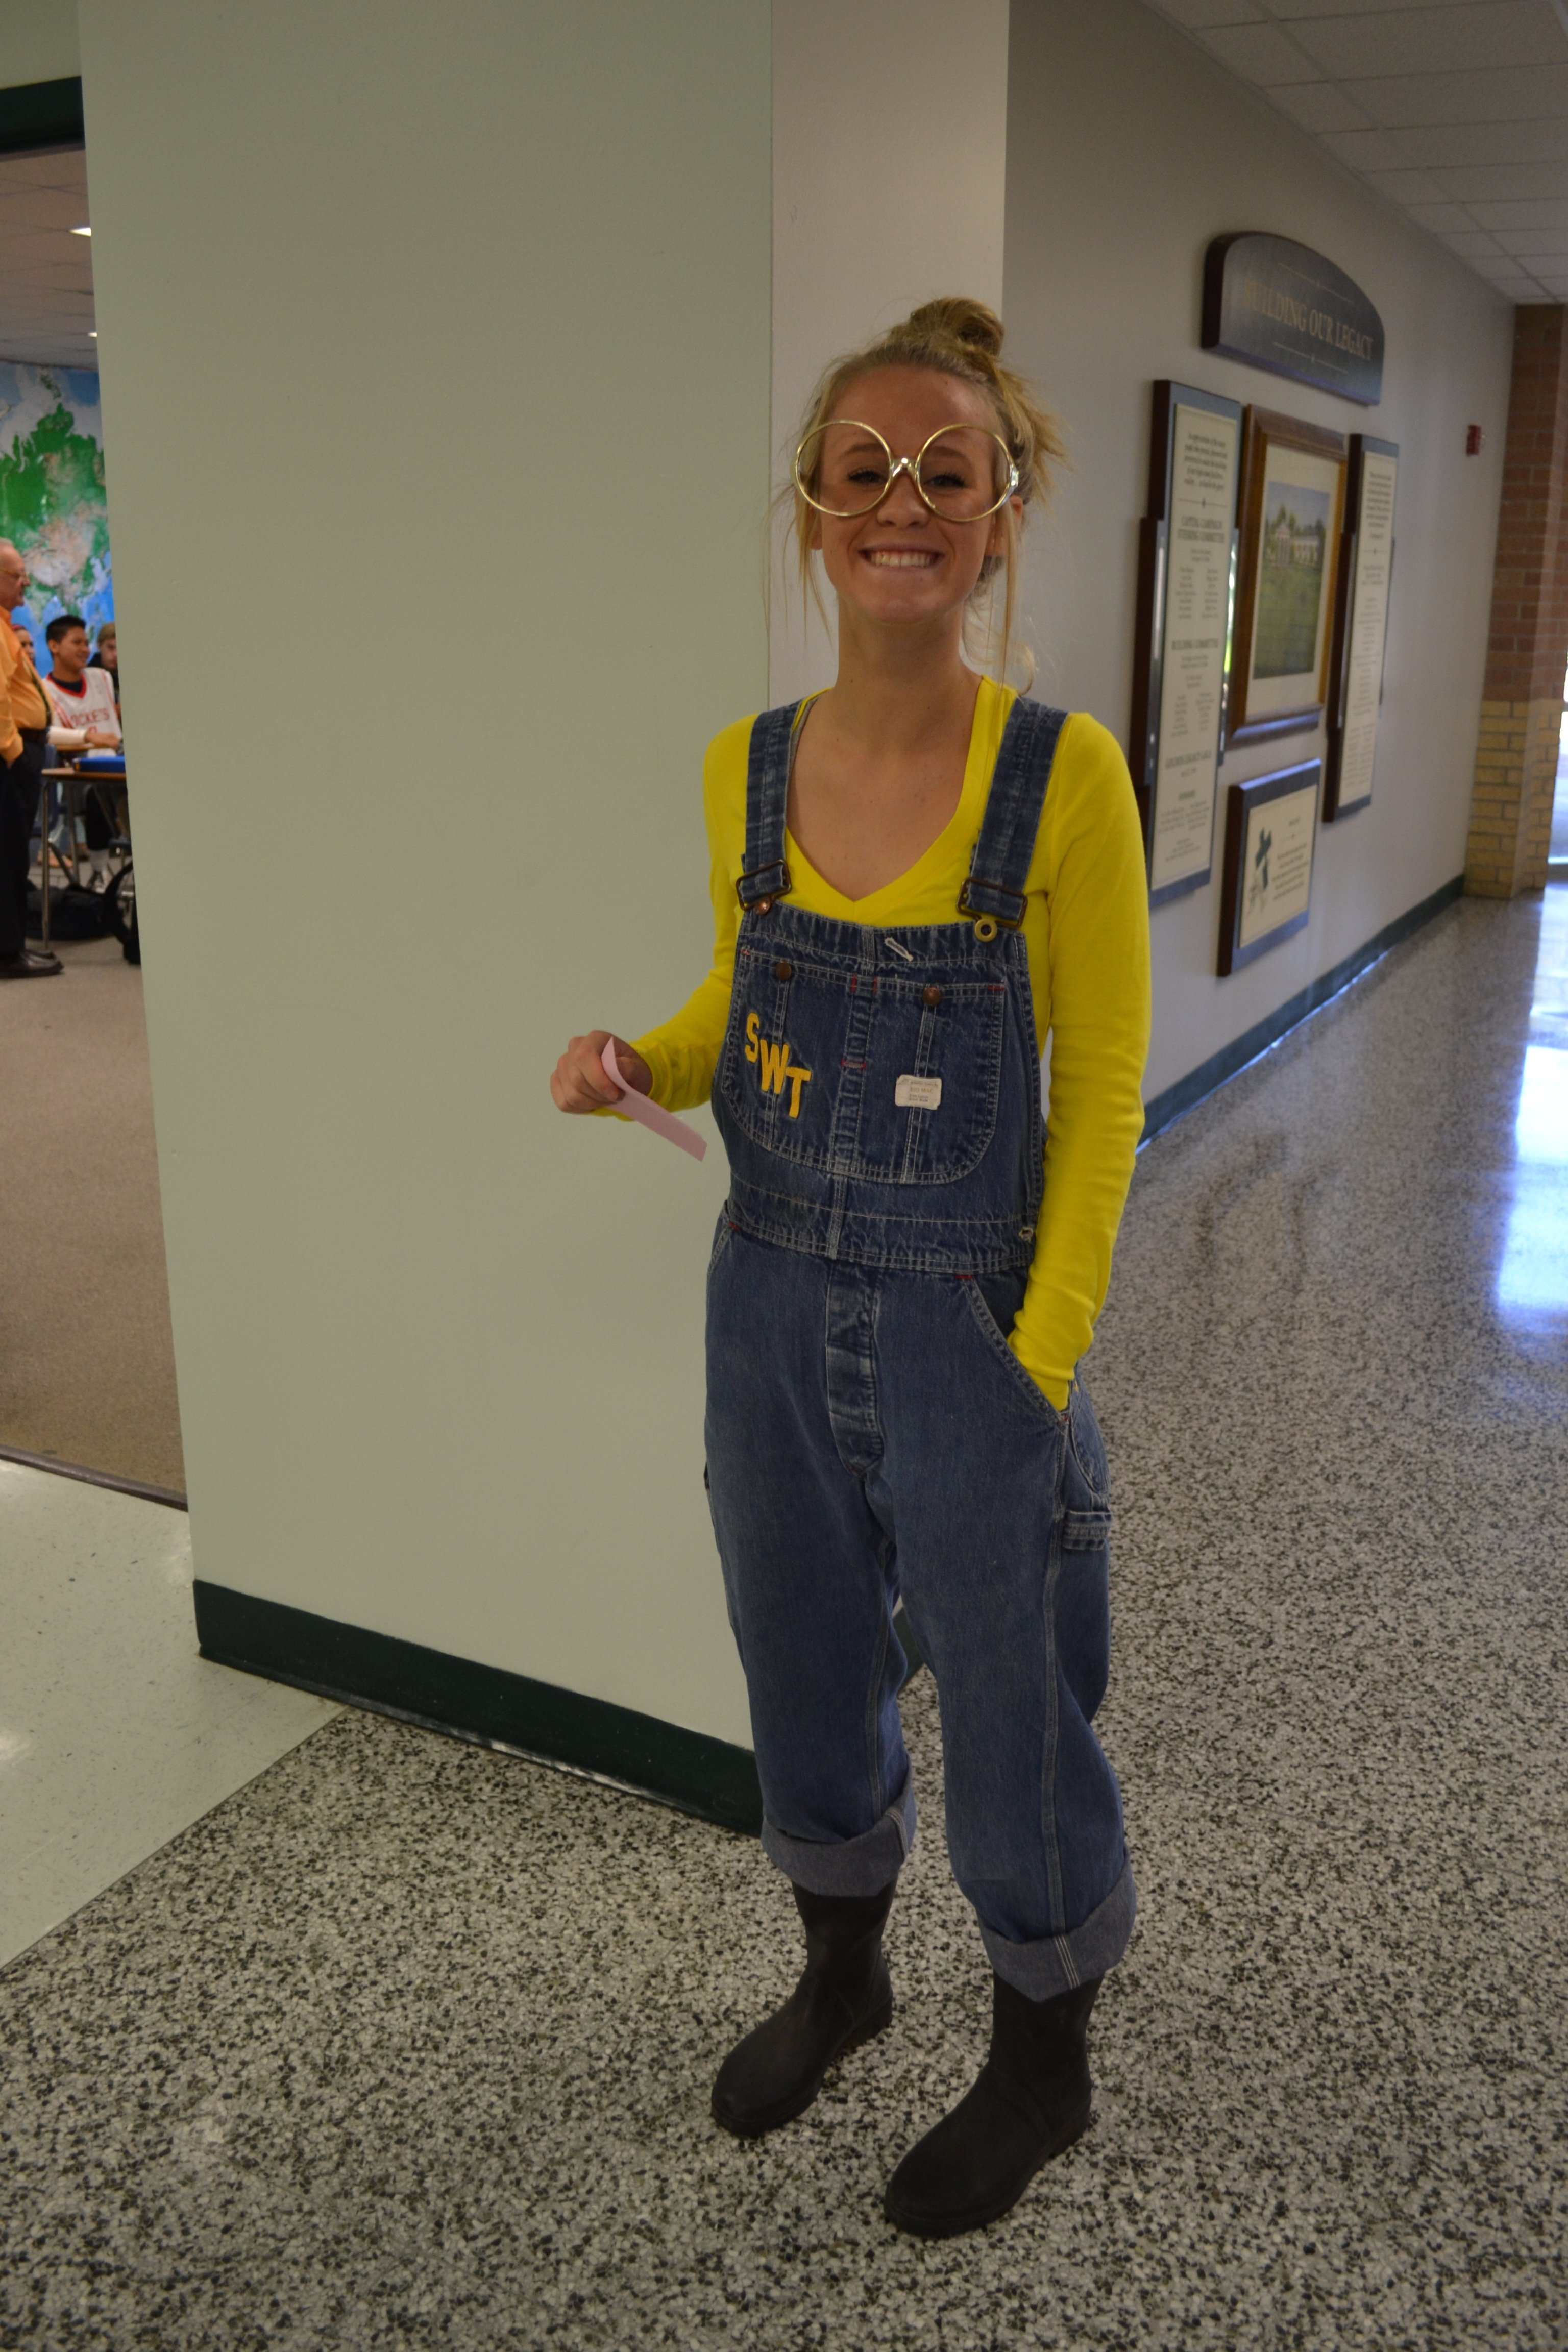 10 Great Celebrity Day Ideas For School celebrity character day high school homecoming pinterest 3